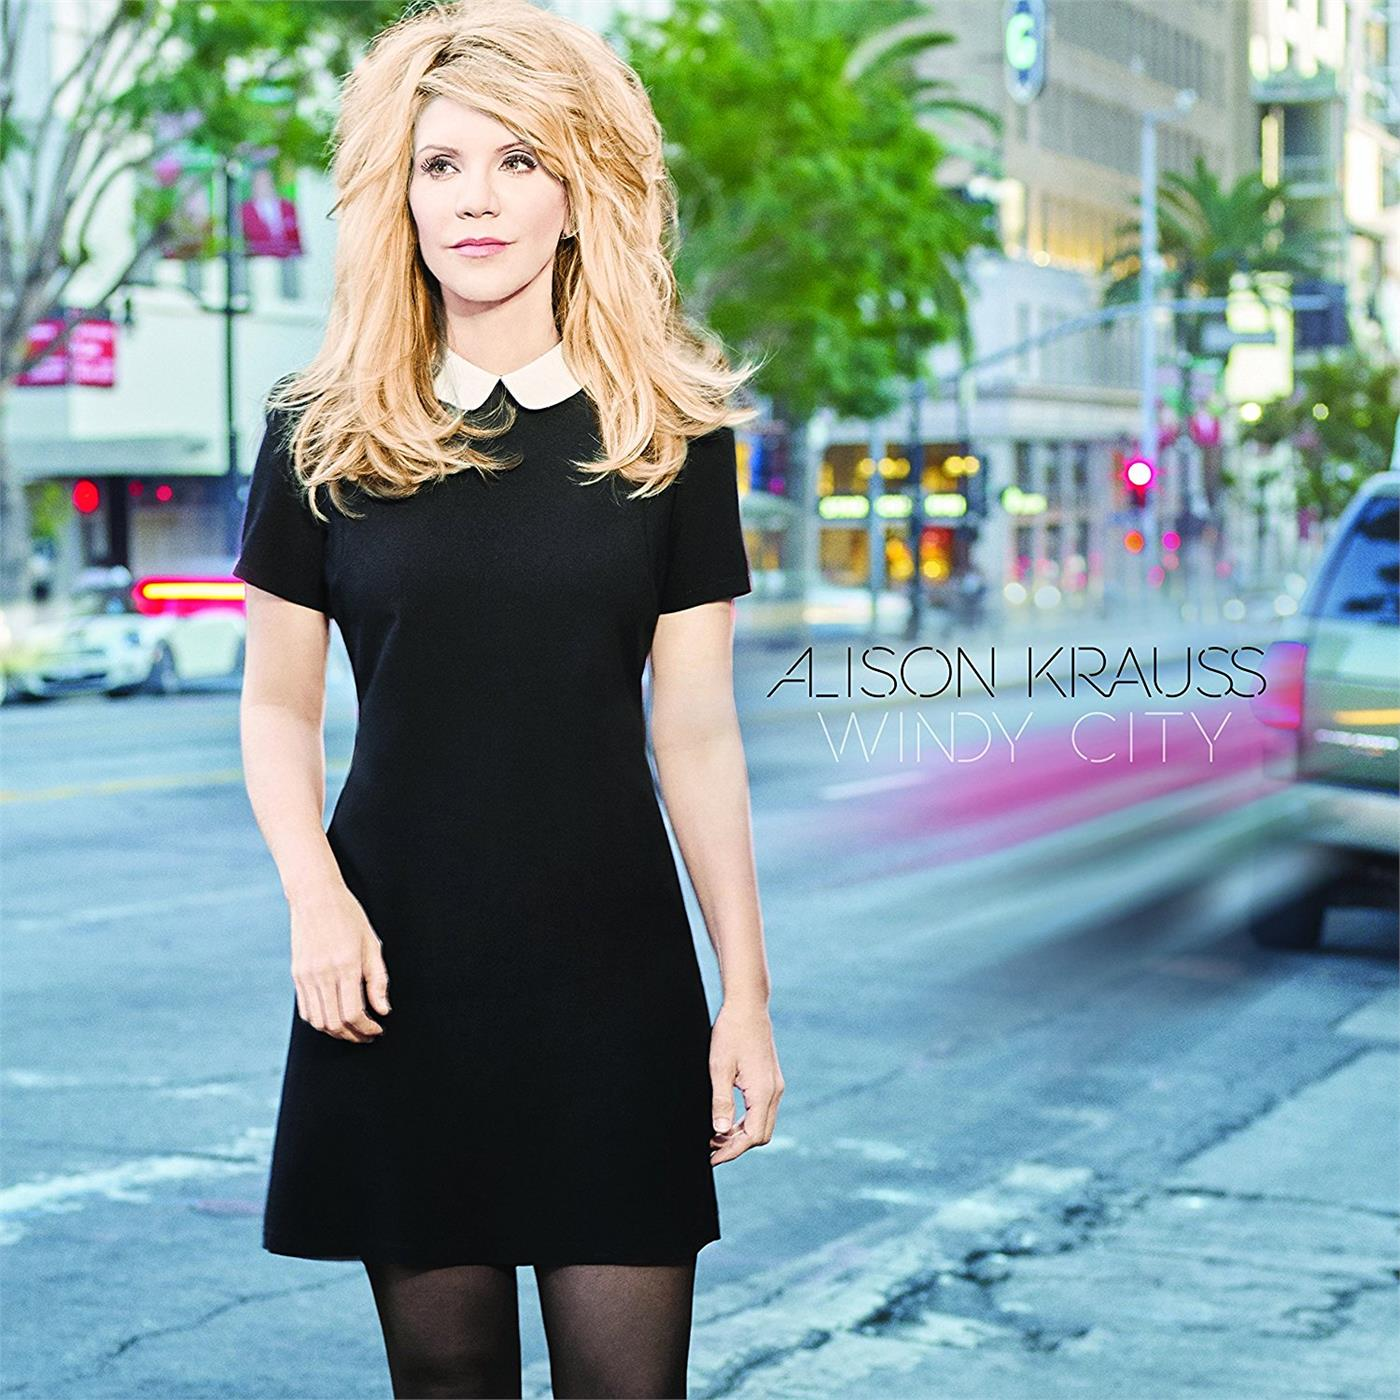 0602557037500 Capitol 5703750 Alison Krauss Windy City (LP)